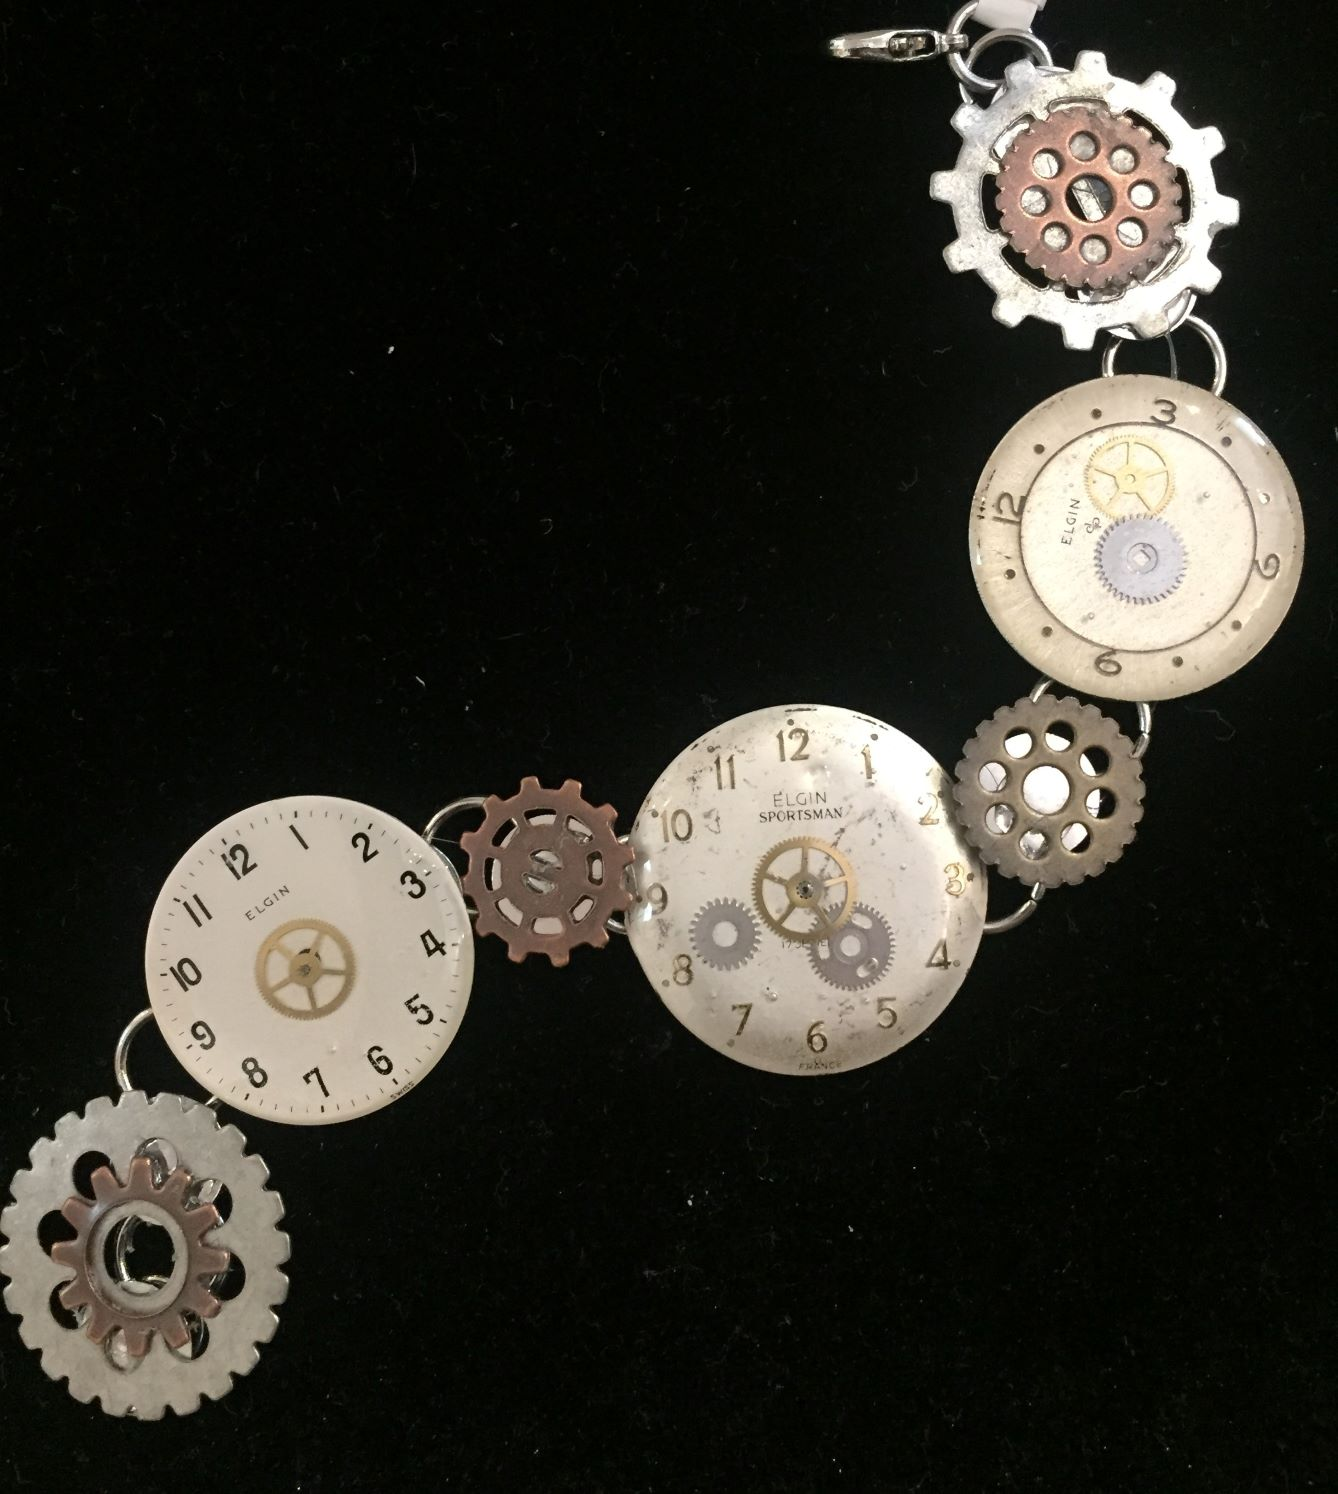 Bracelet made with Elgin watch faces and gears